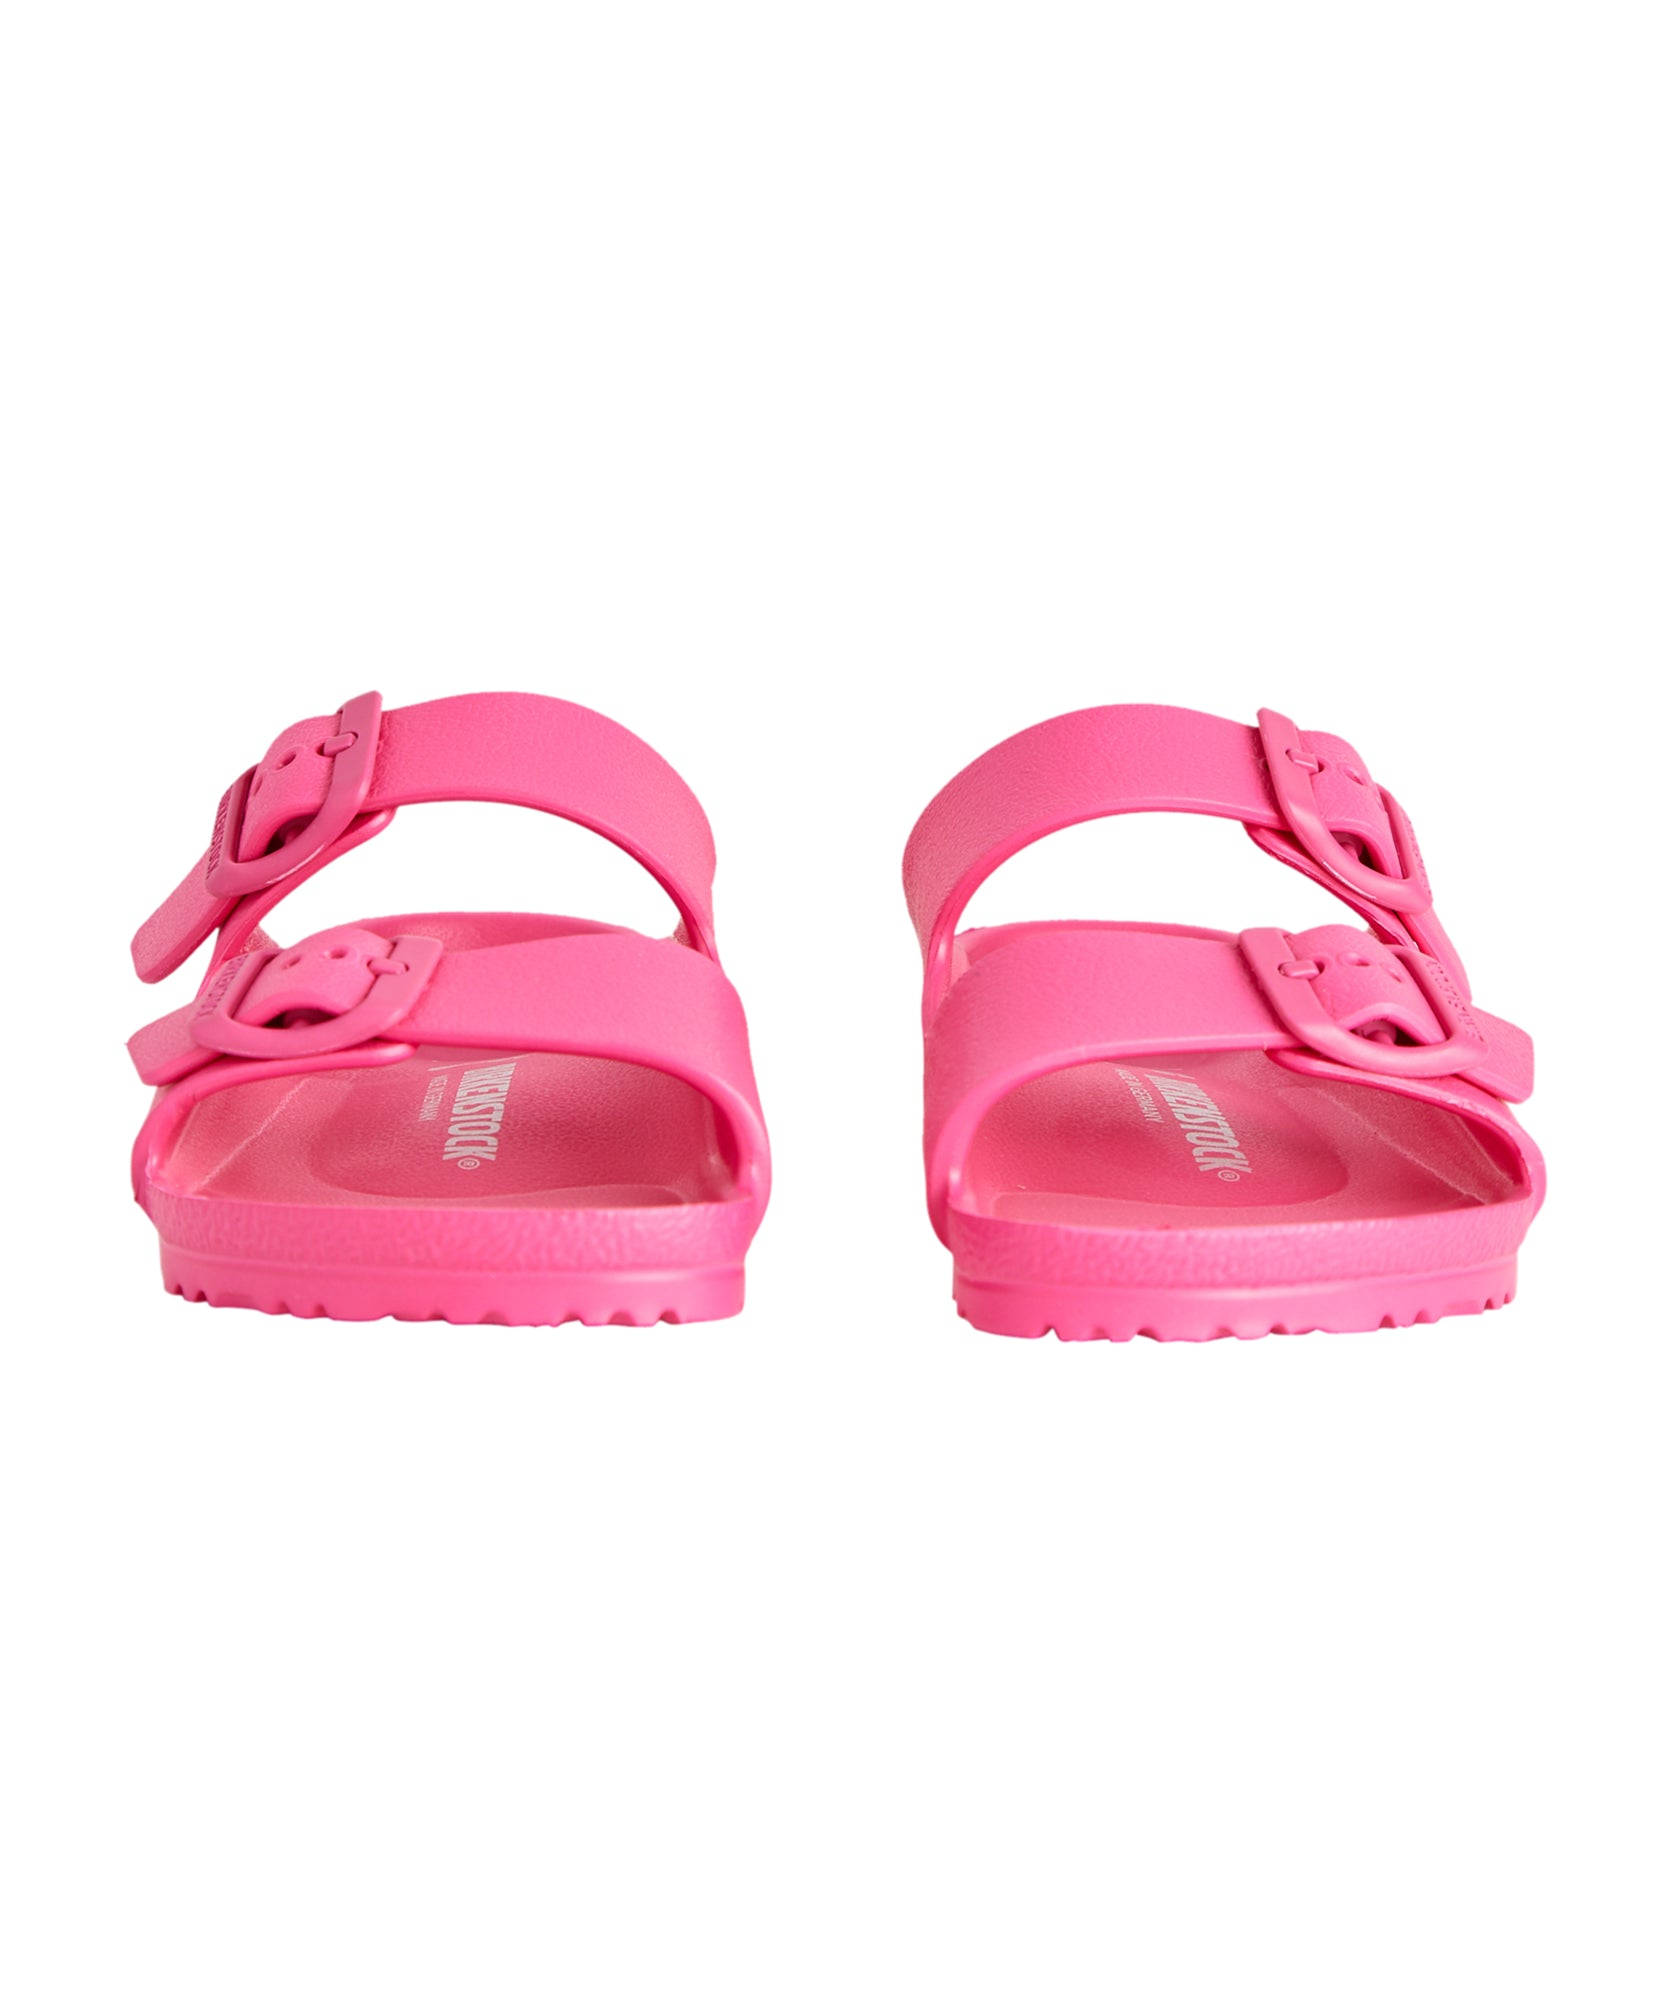 EVA Arizona Sandals